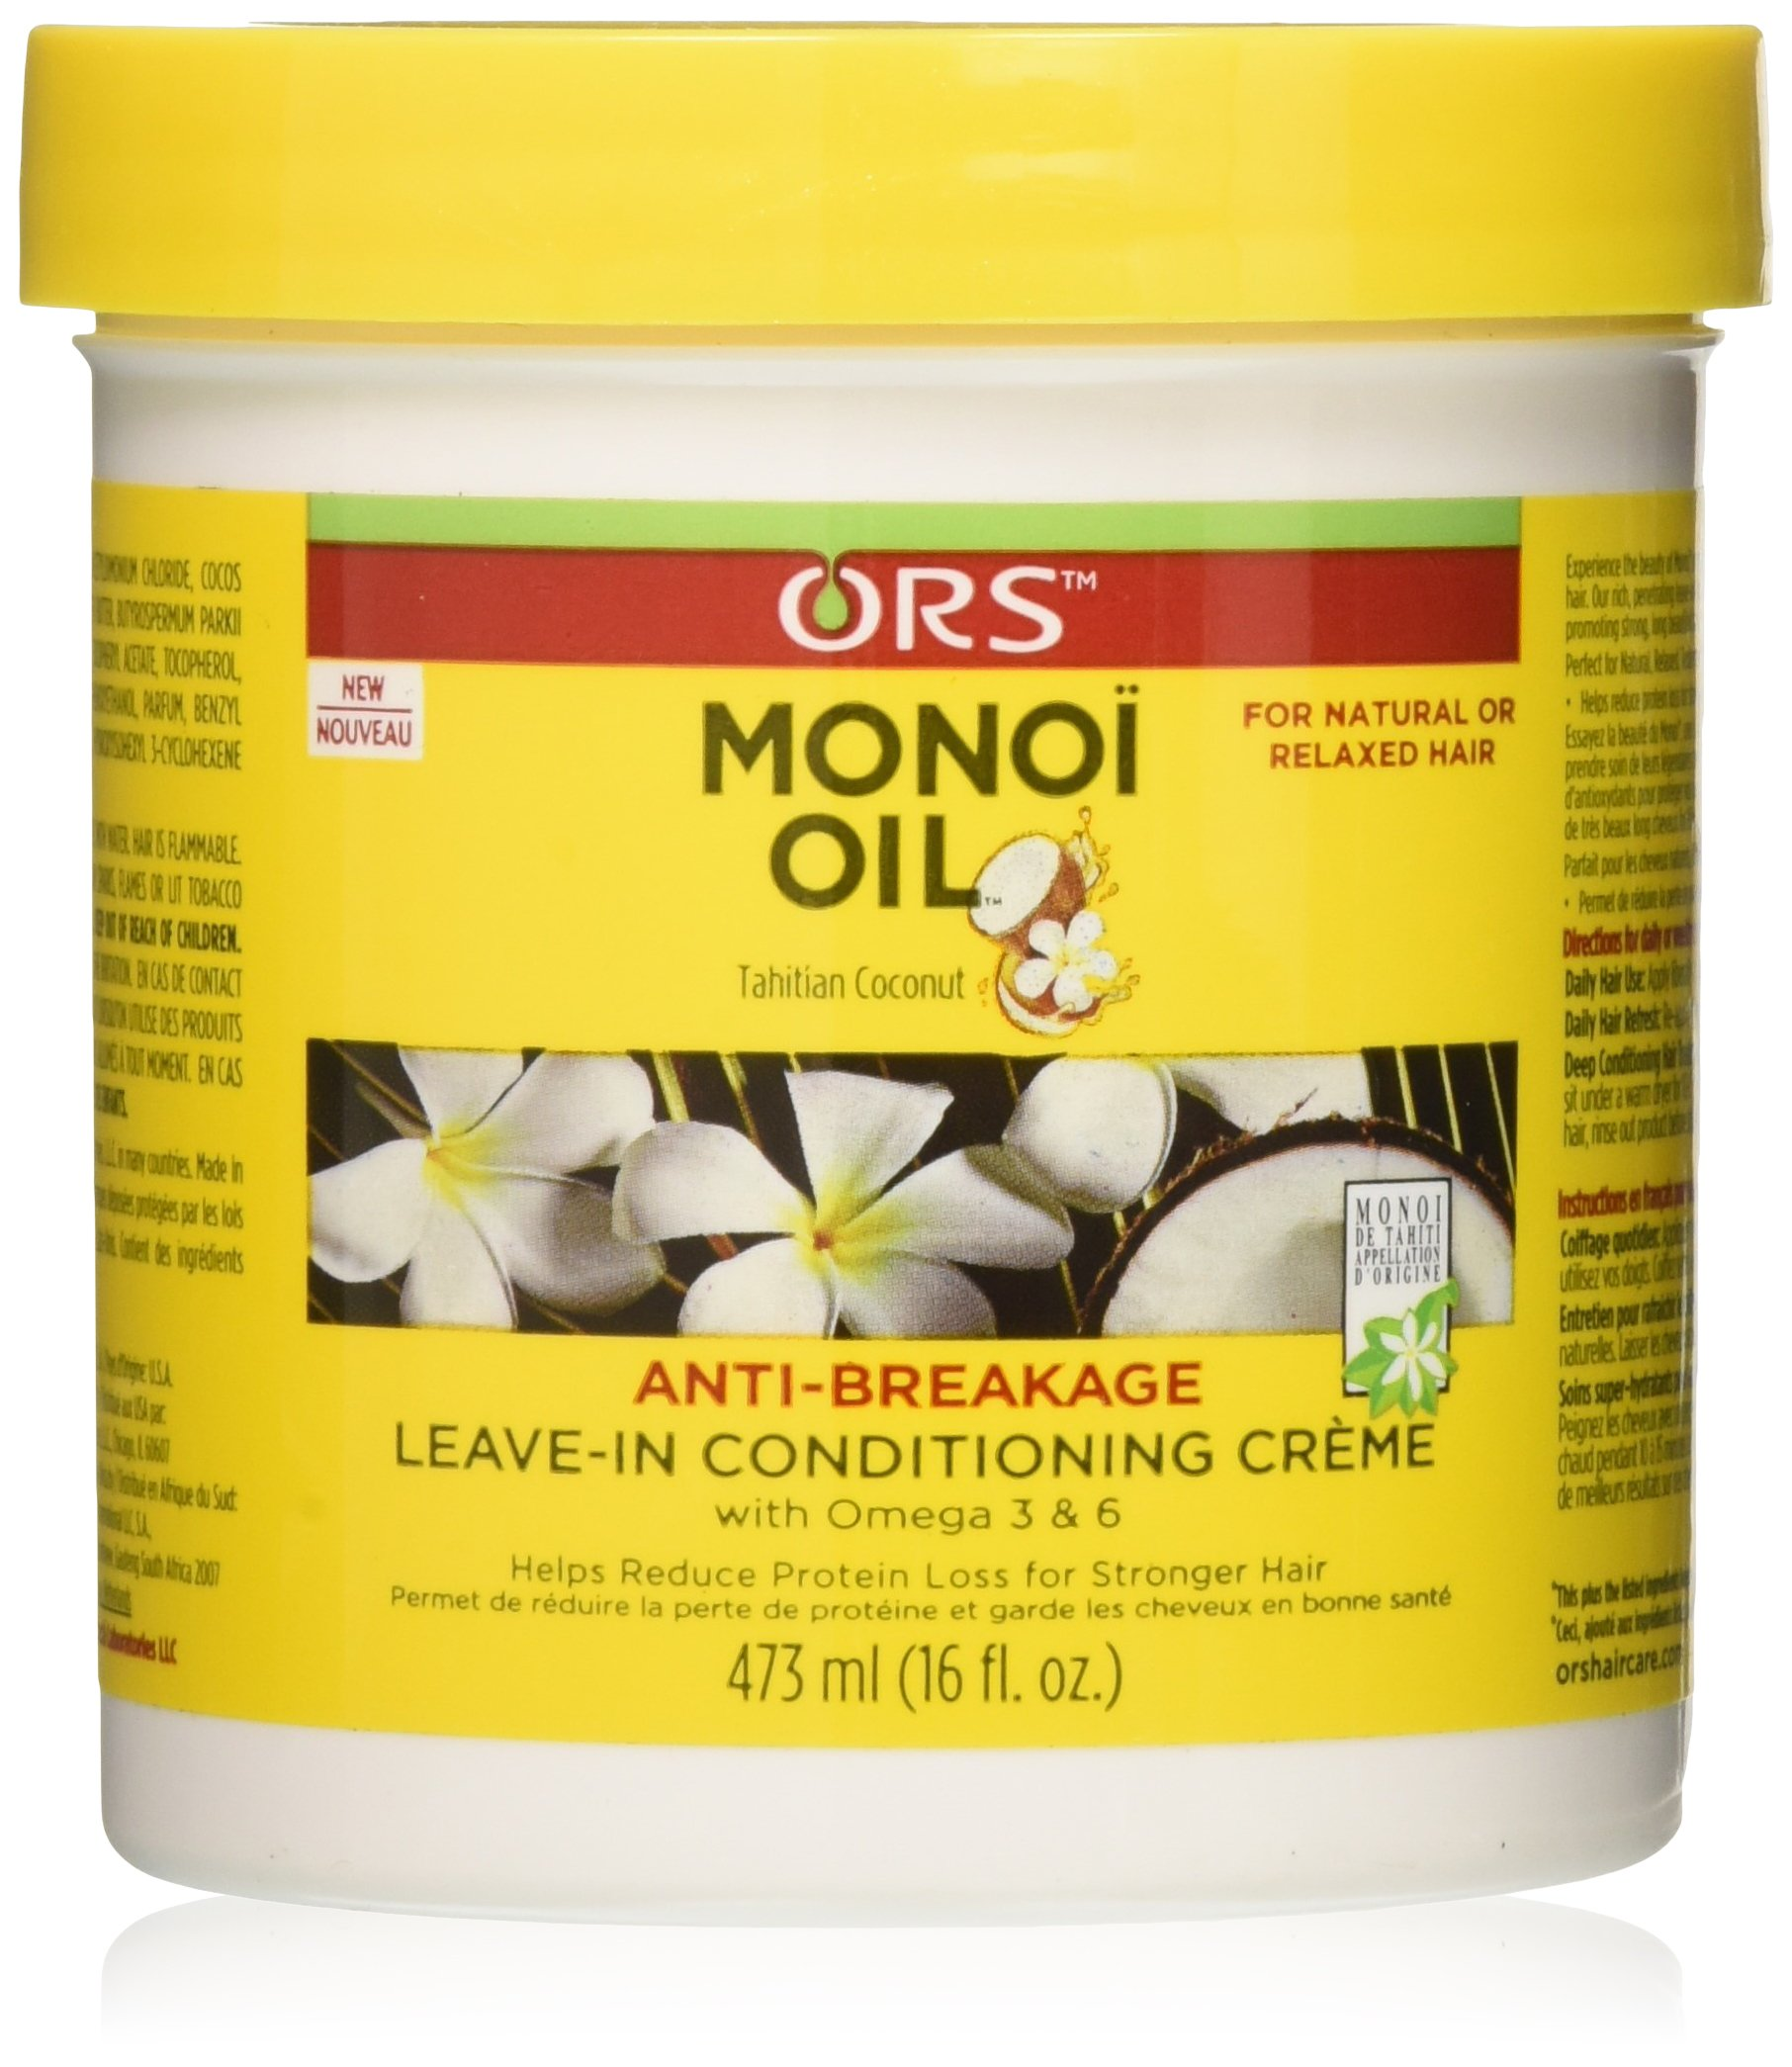 ORS Monoi Oil Anti-Breakage Leave-in Conditioning Creme, 16 Ounce